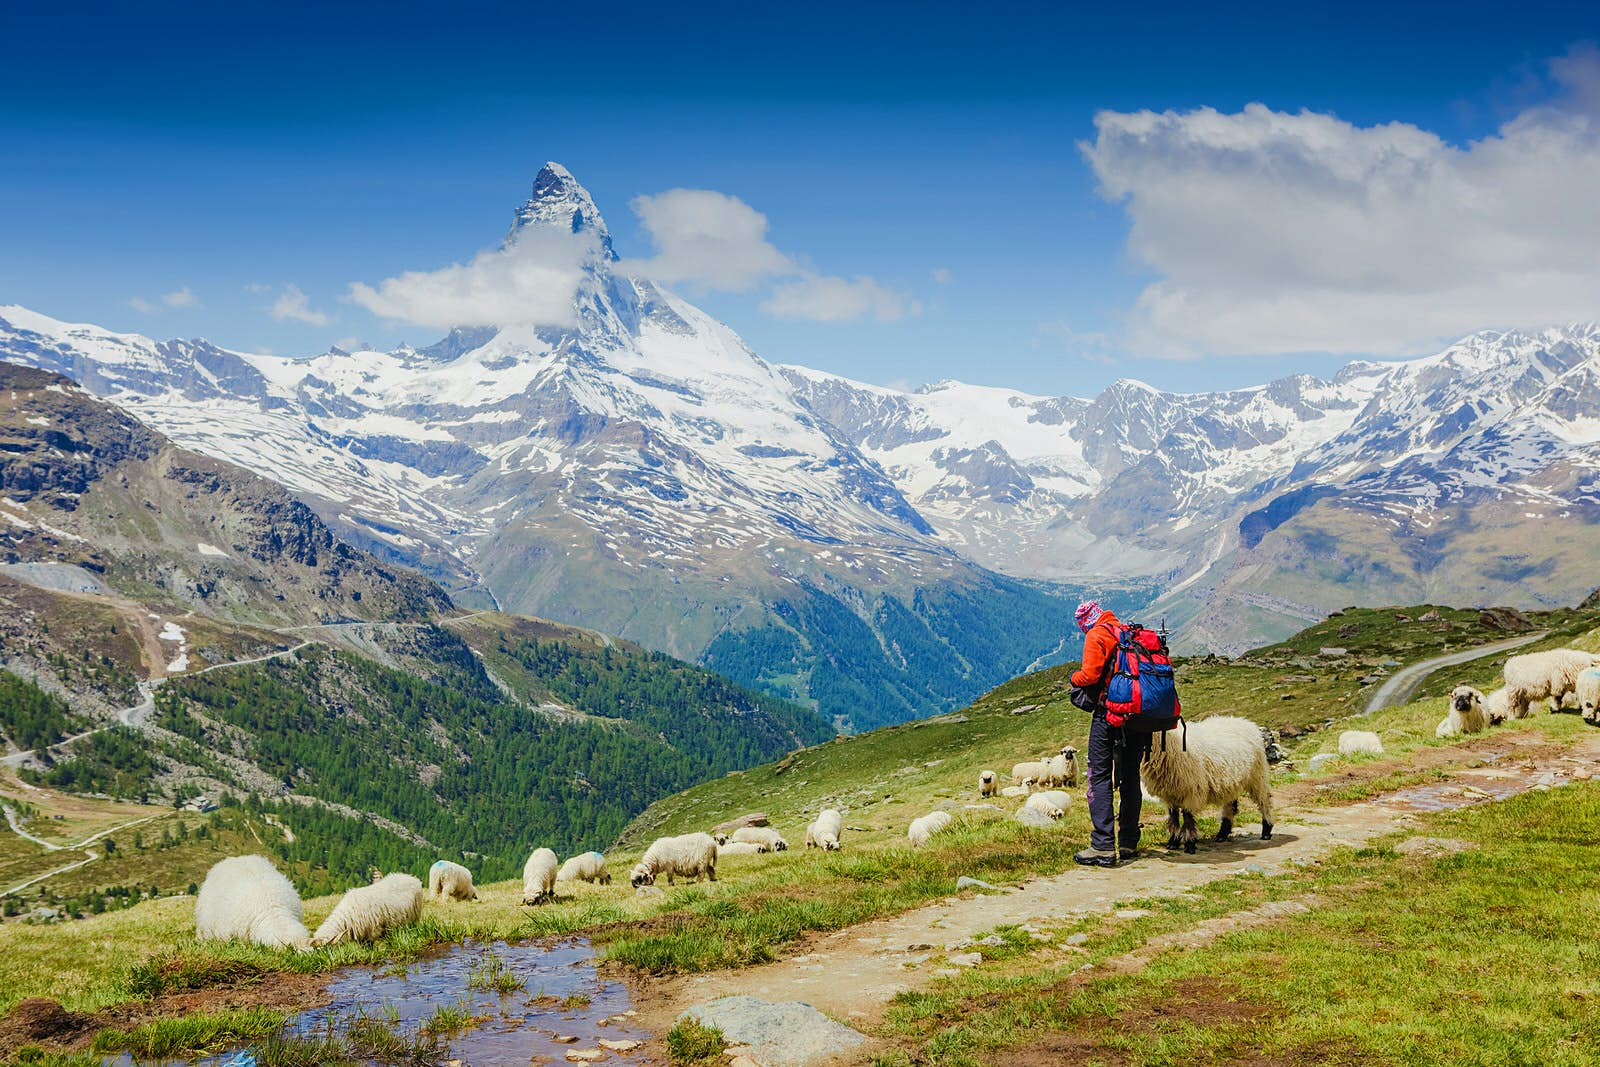 A hiker in full gear stands with a flock of sheep on a mountain with a view of the Matterhorn in the Swiss Alps